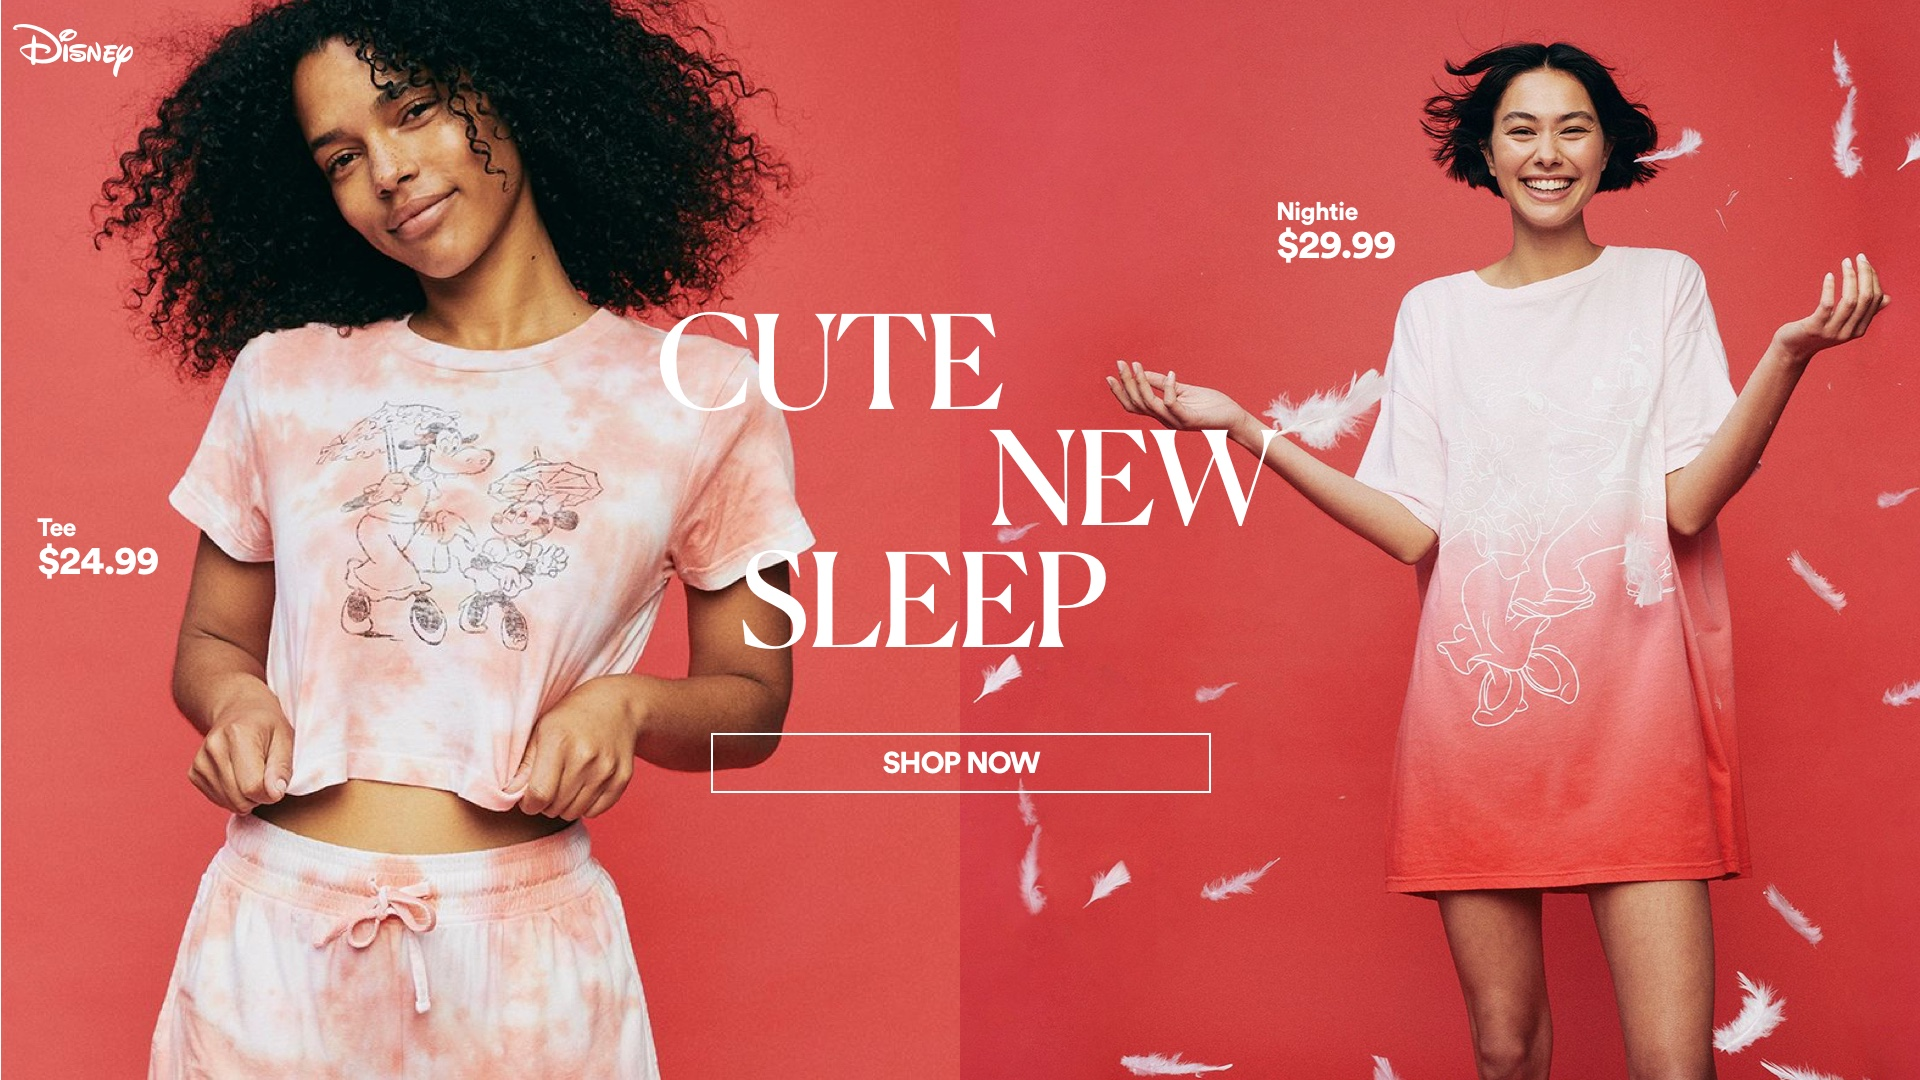 Cute New Sleep. Shop Now